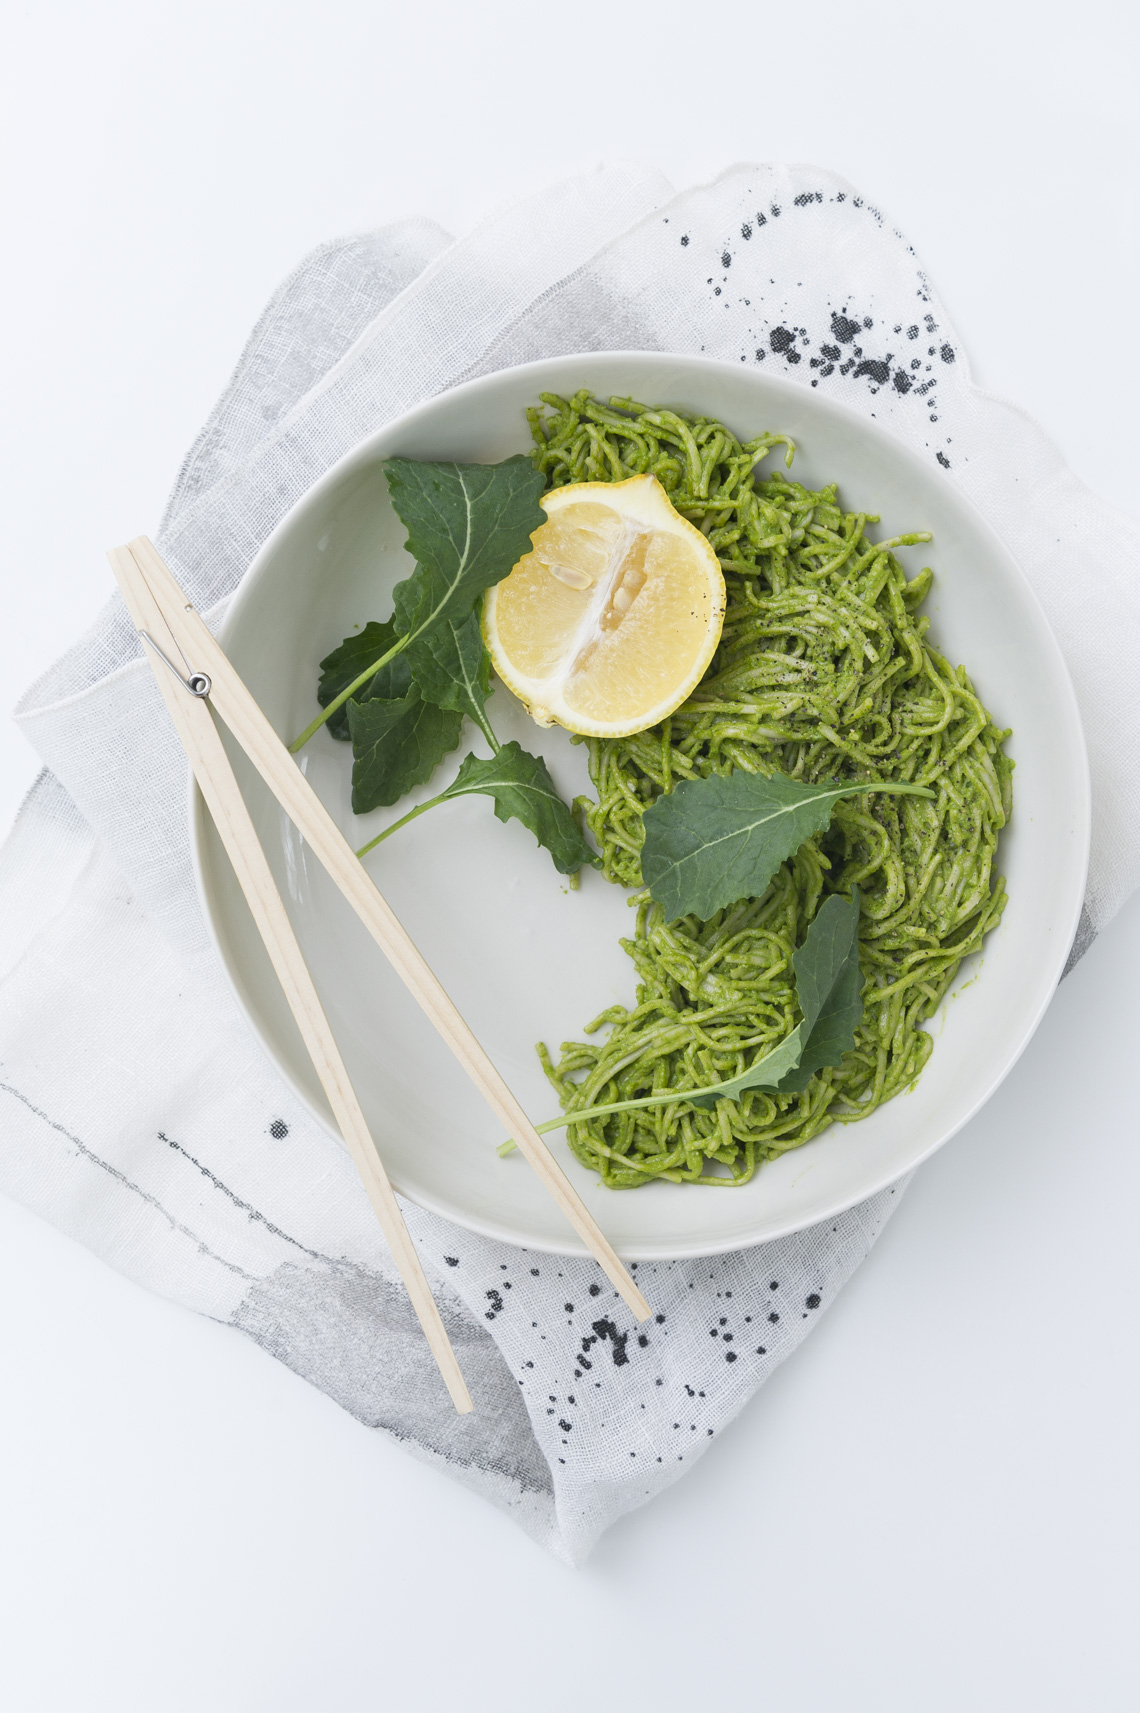 NYC Food Photographer - Pesto Soba Noodles